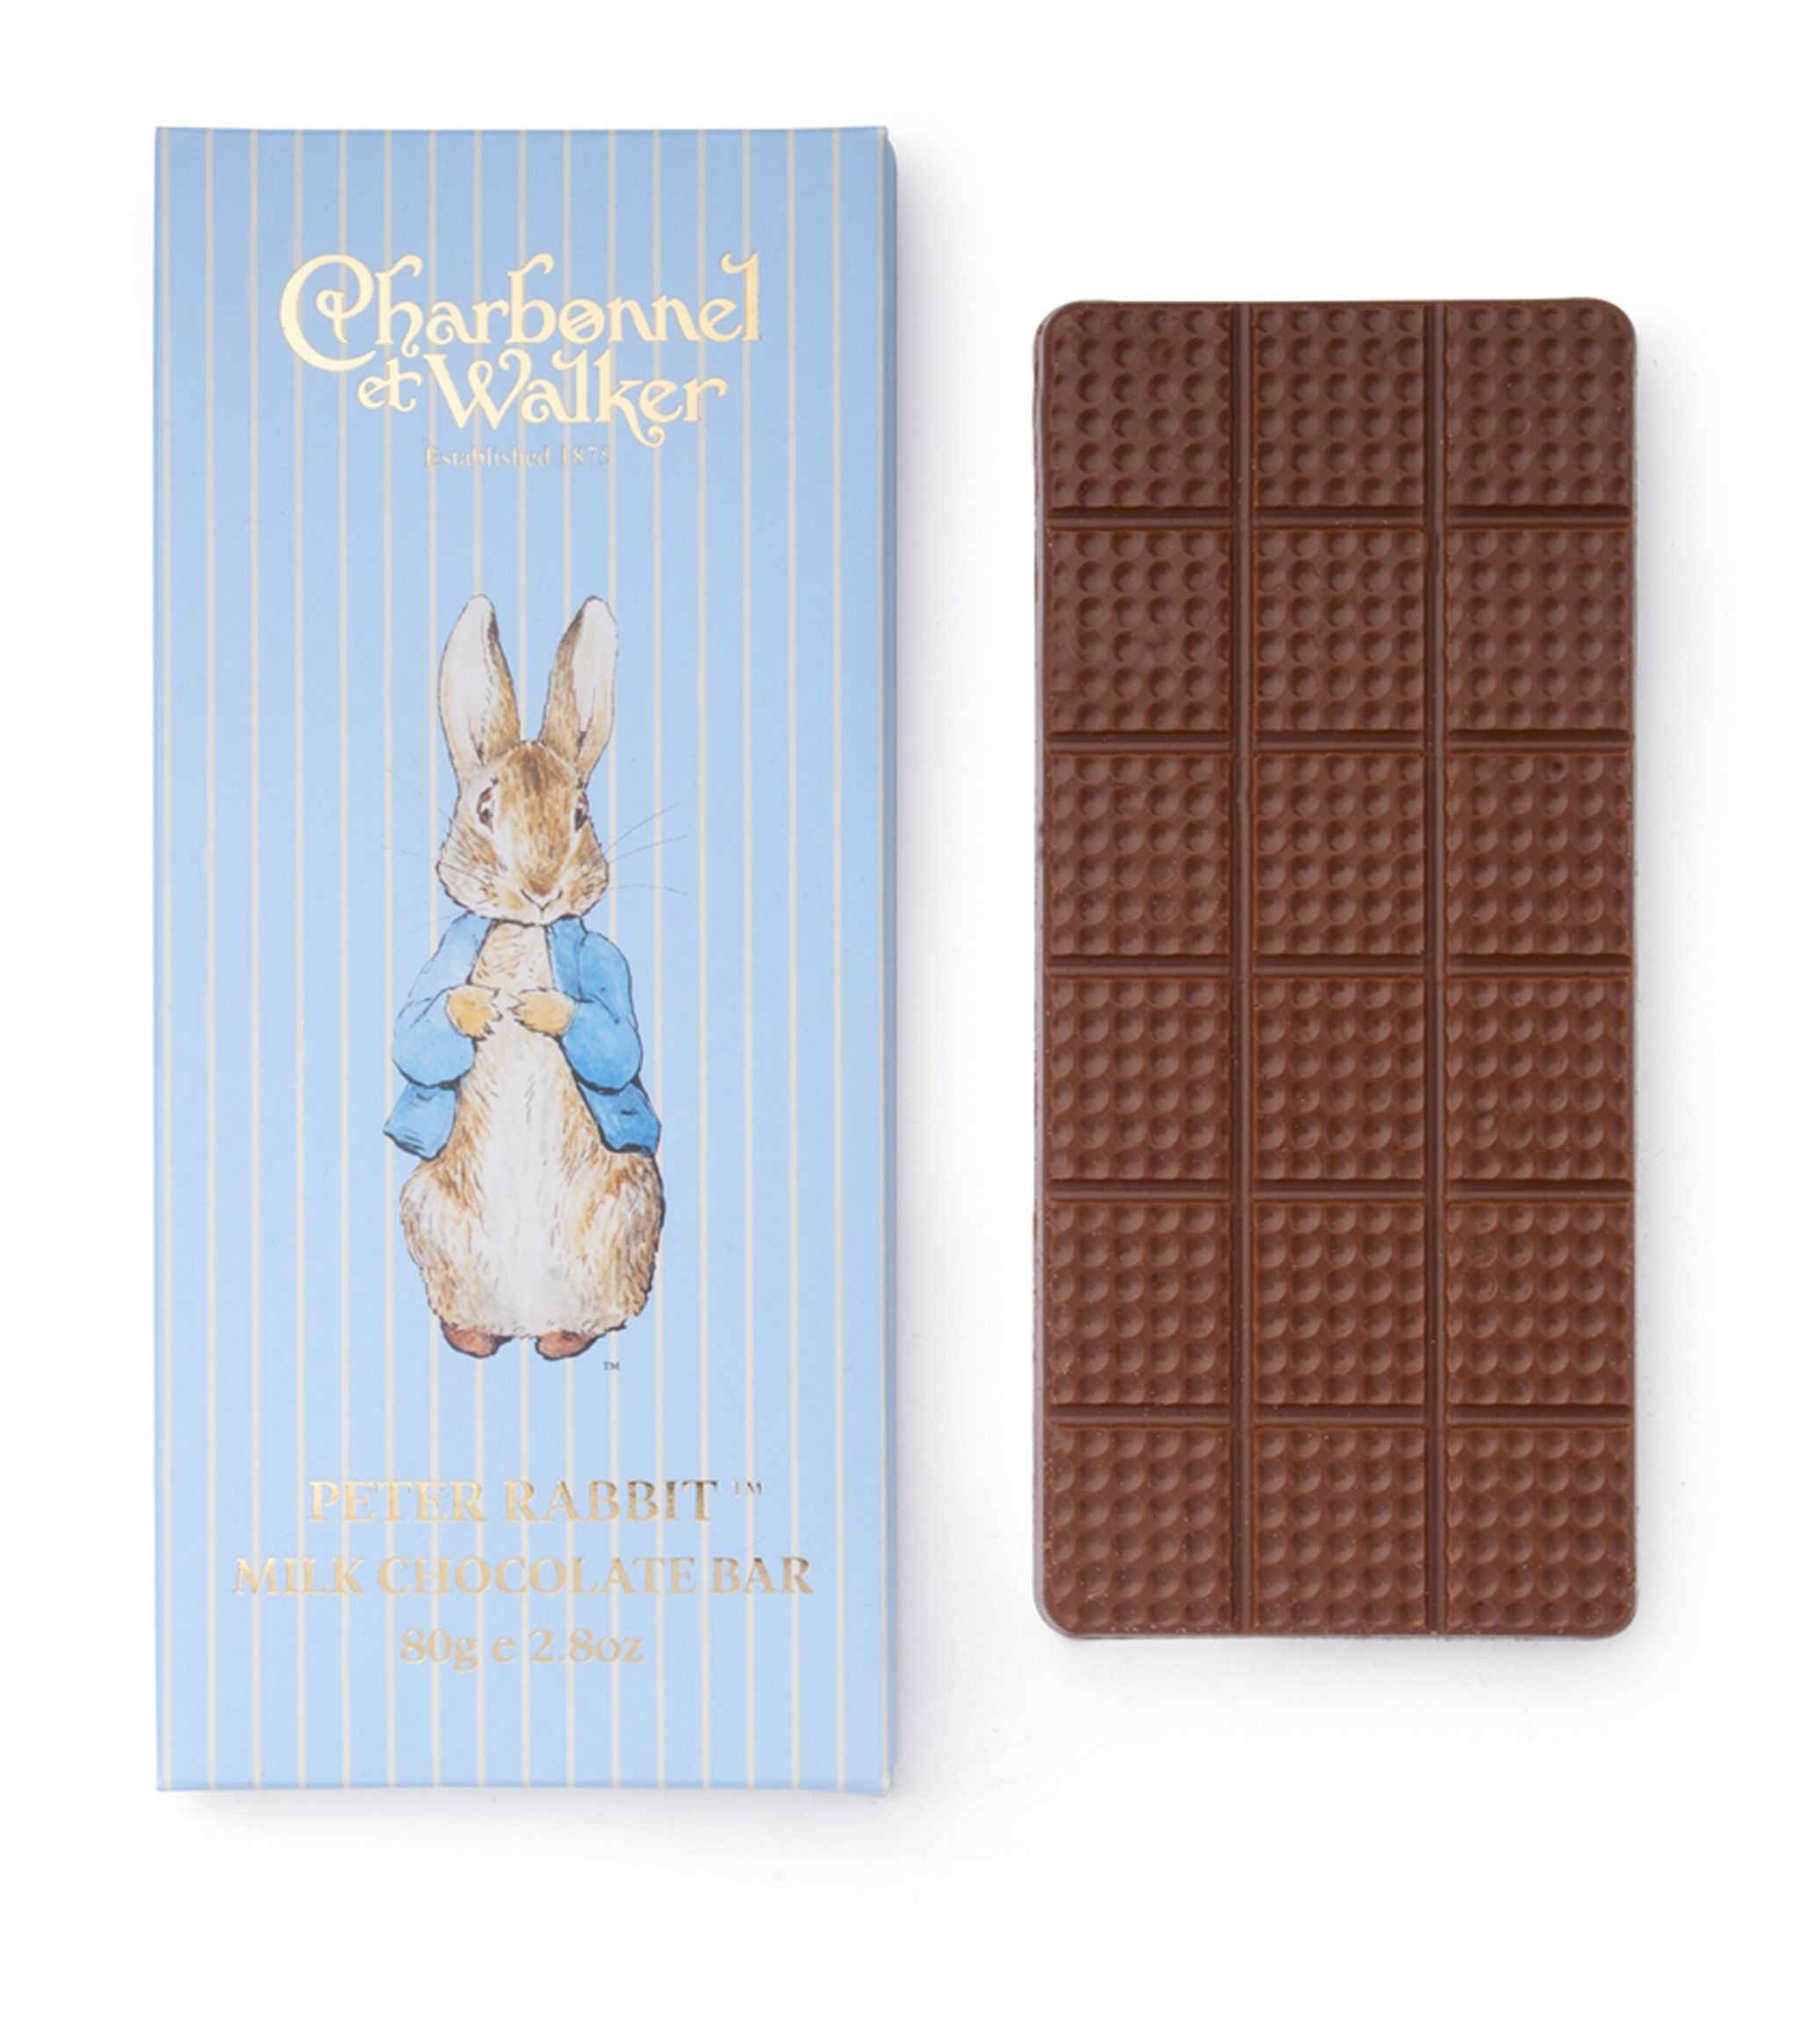 Charbonnel et Walker - Peter Rabbit Milk chocolate bar -